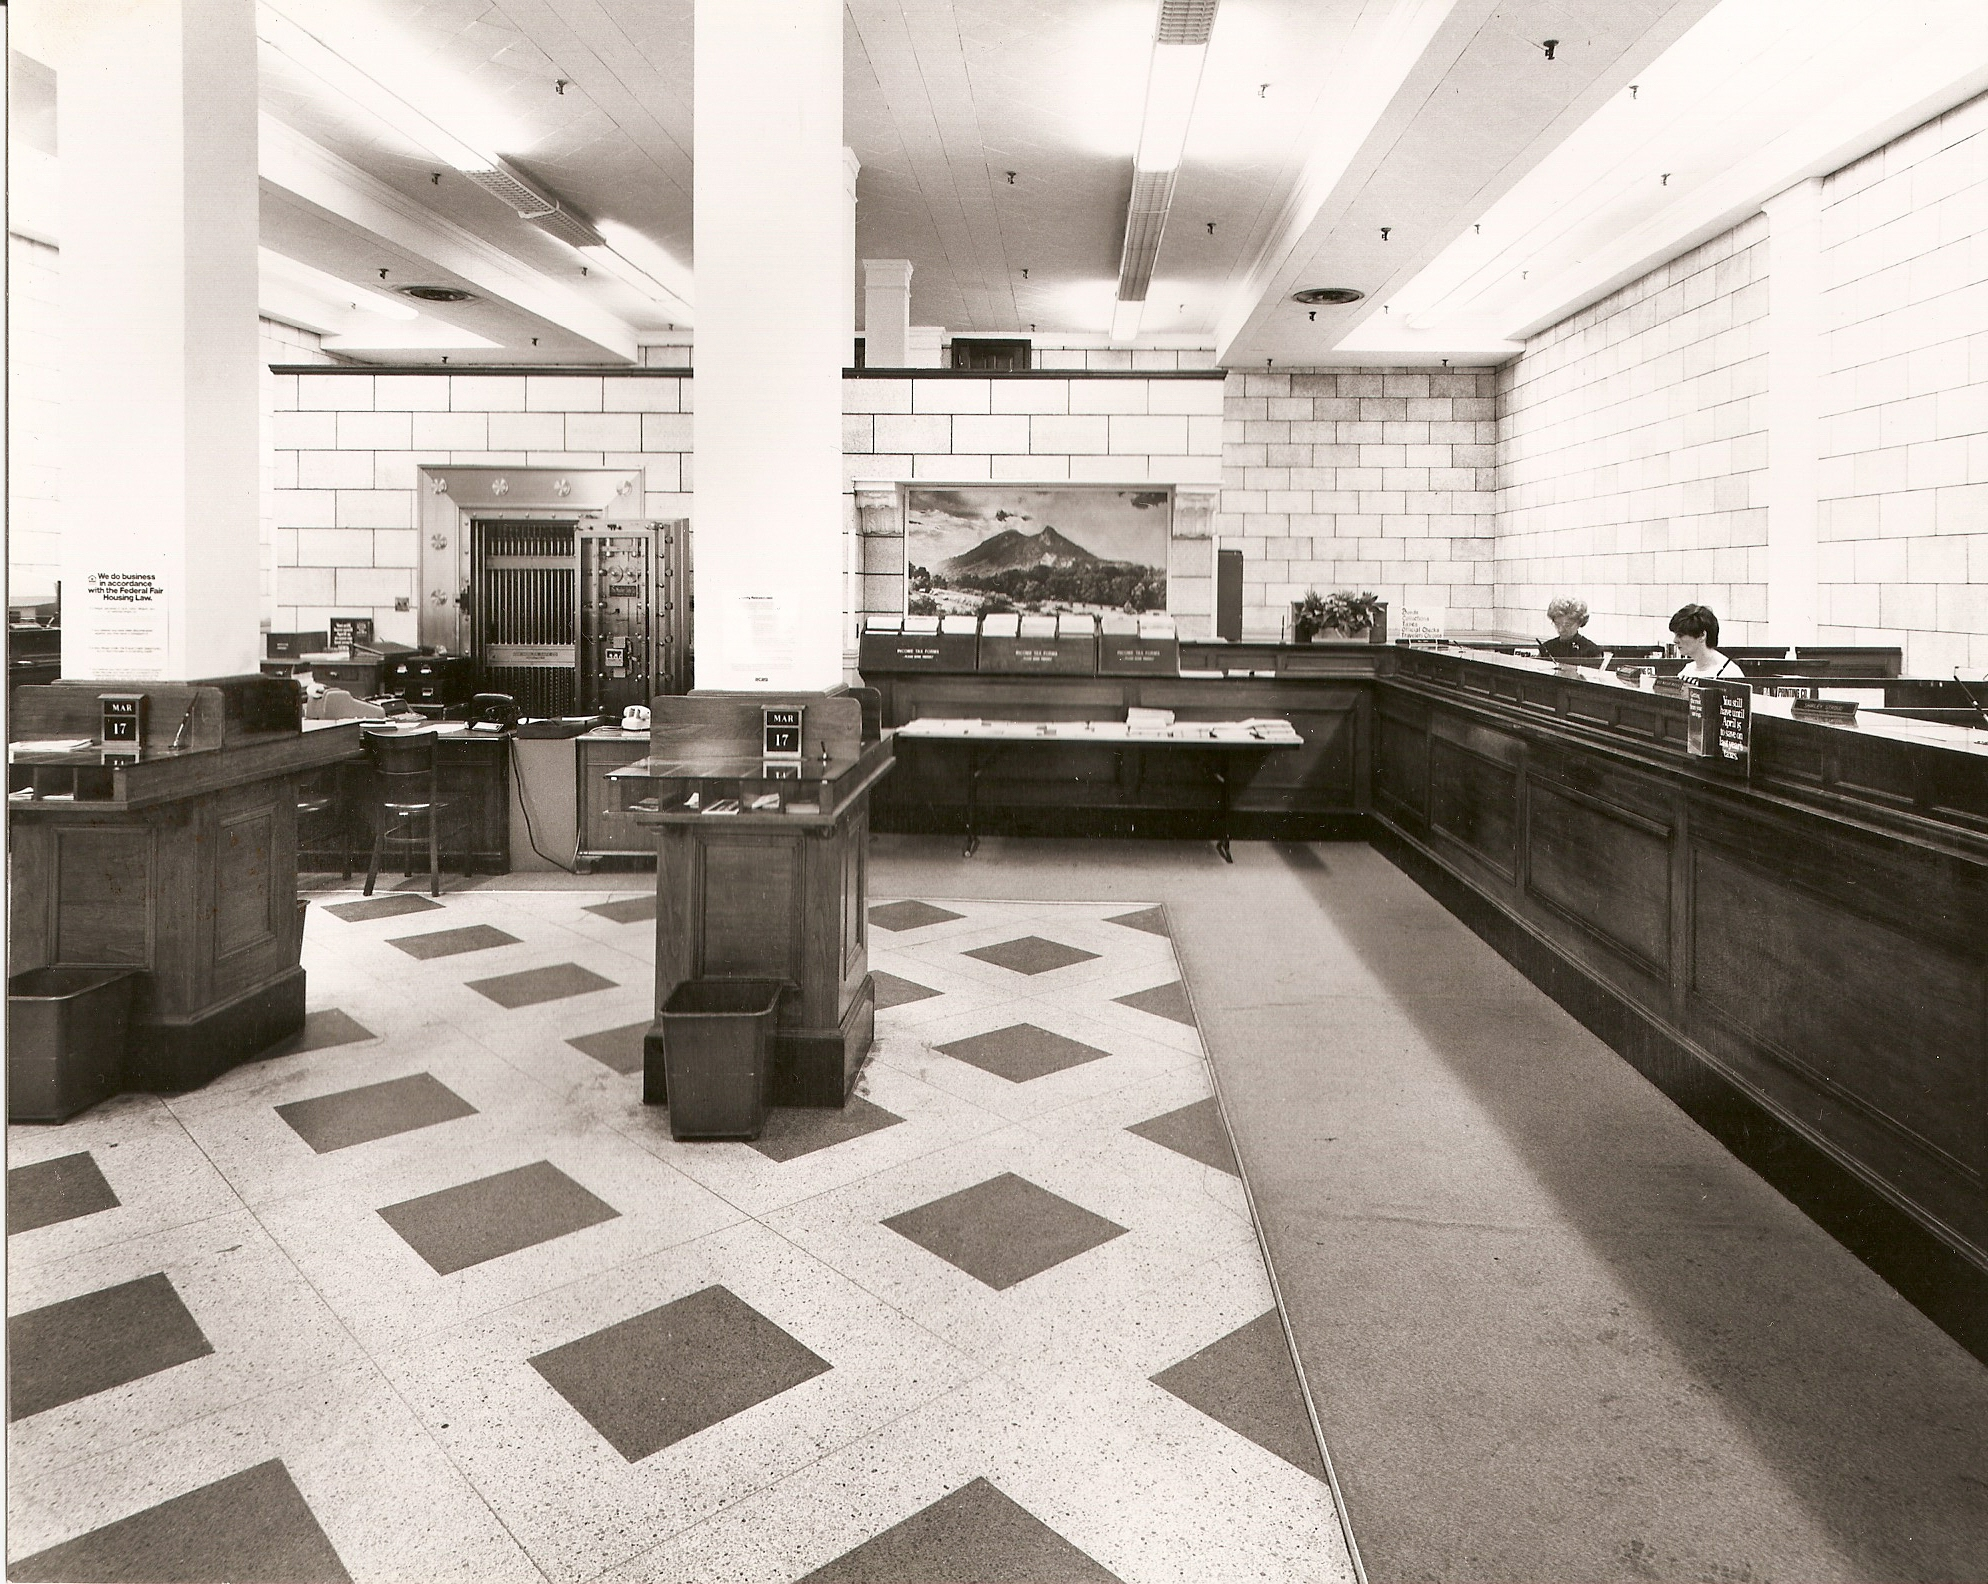 Bank interior view 2 (before)